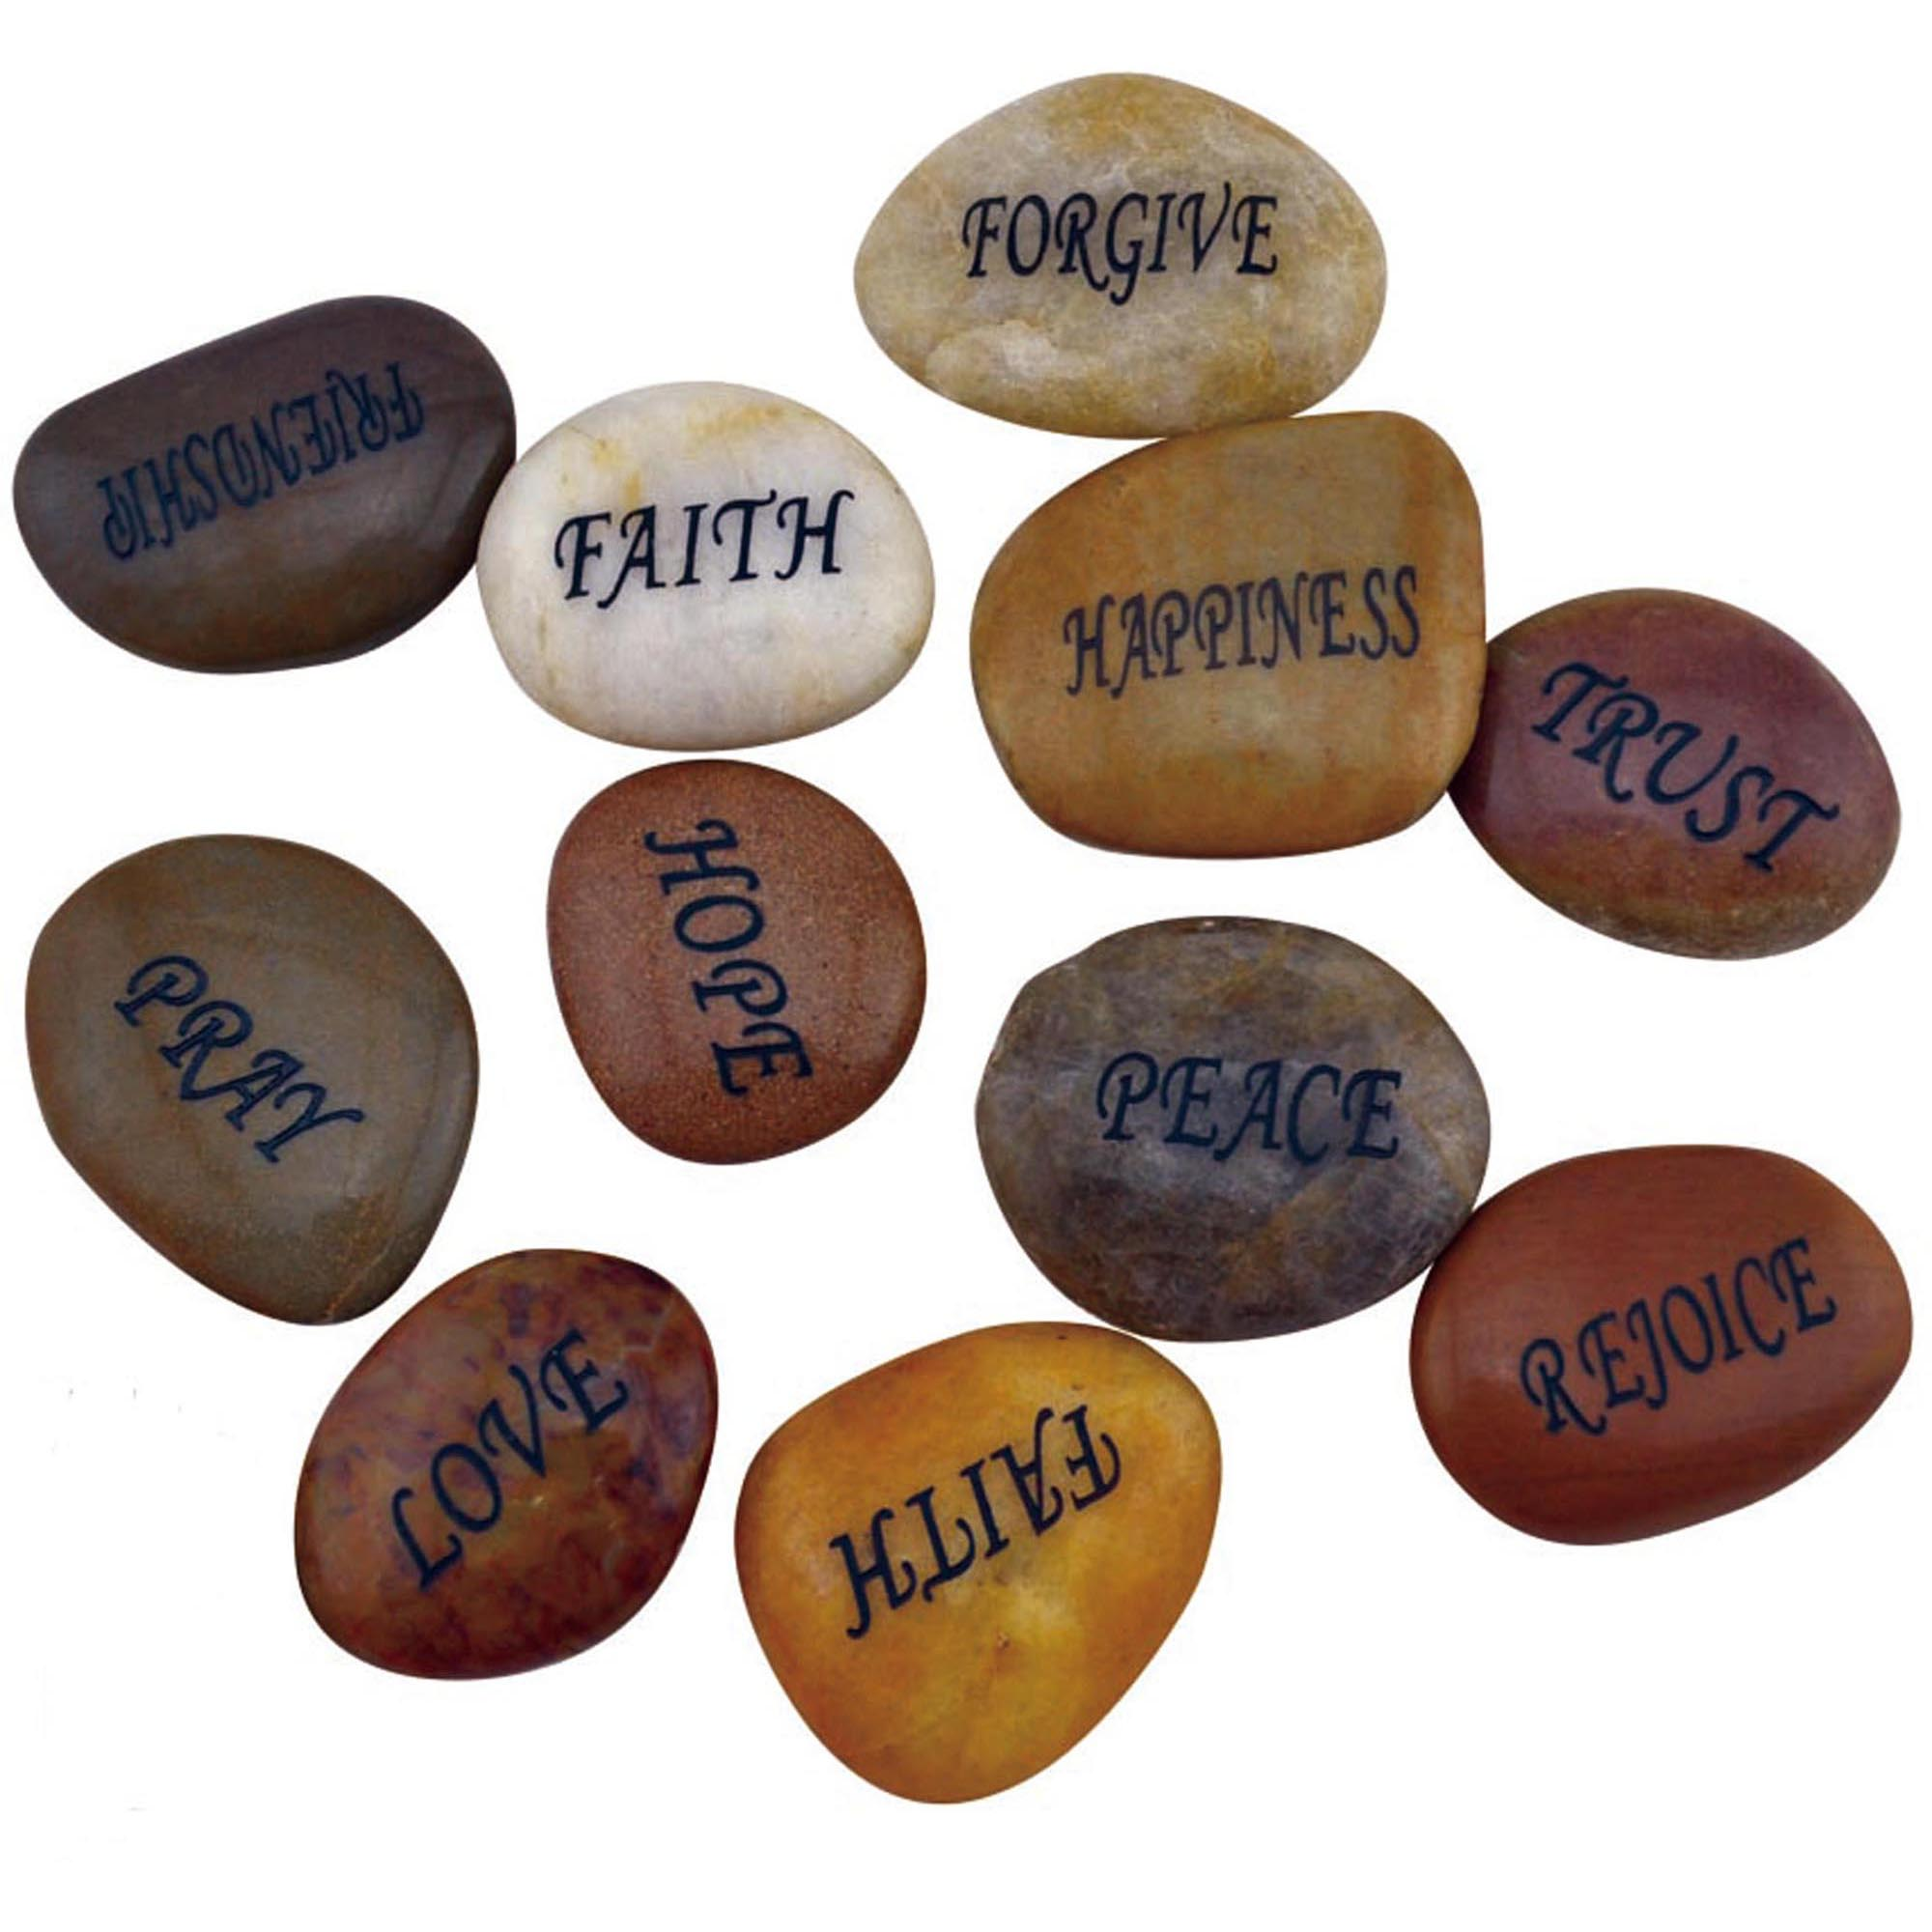 Pebble stone natural pebble with customize engravment words or designs